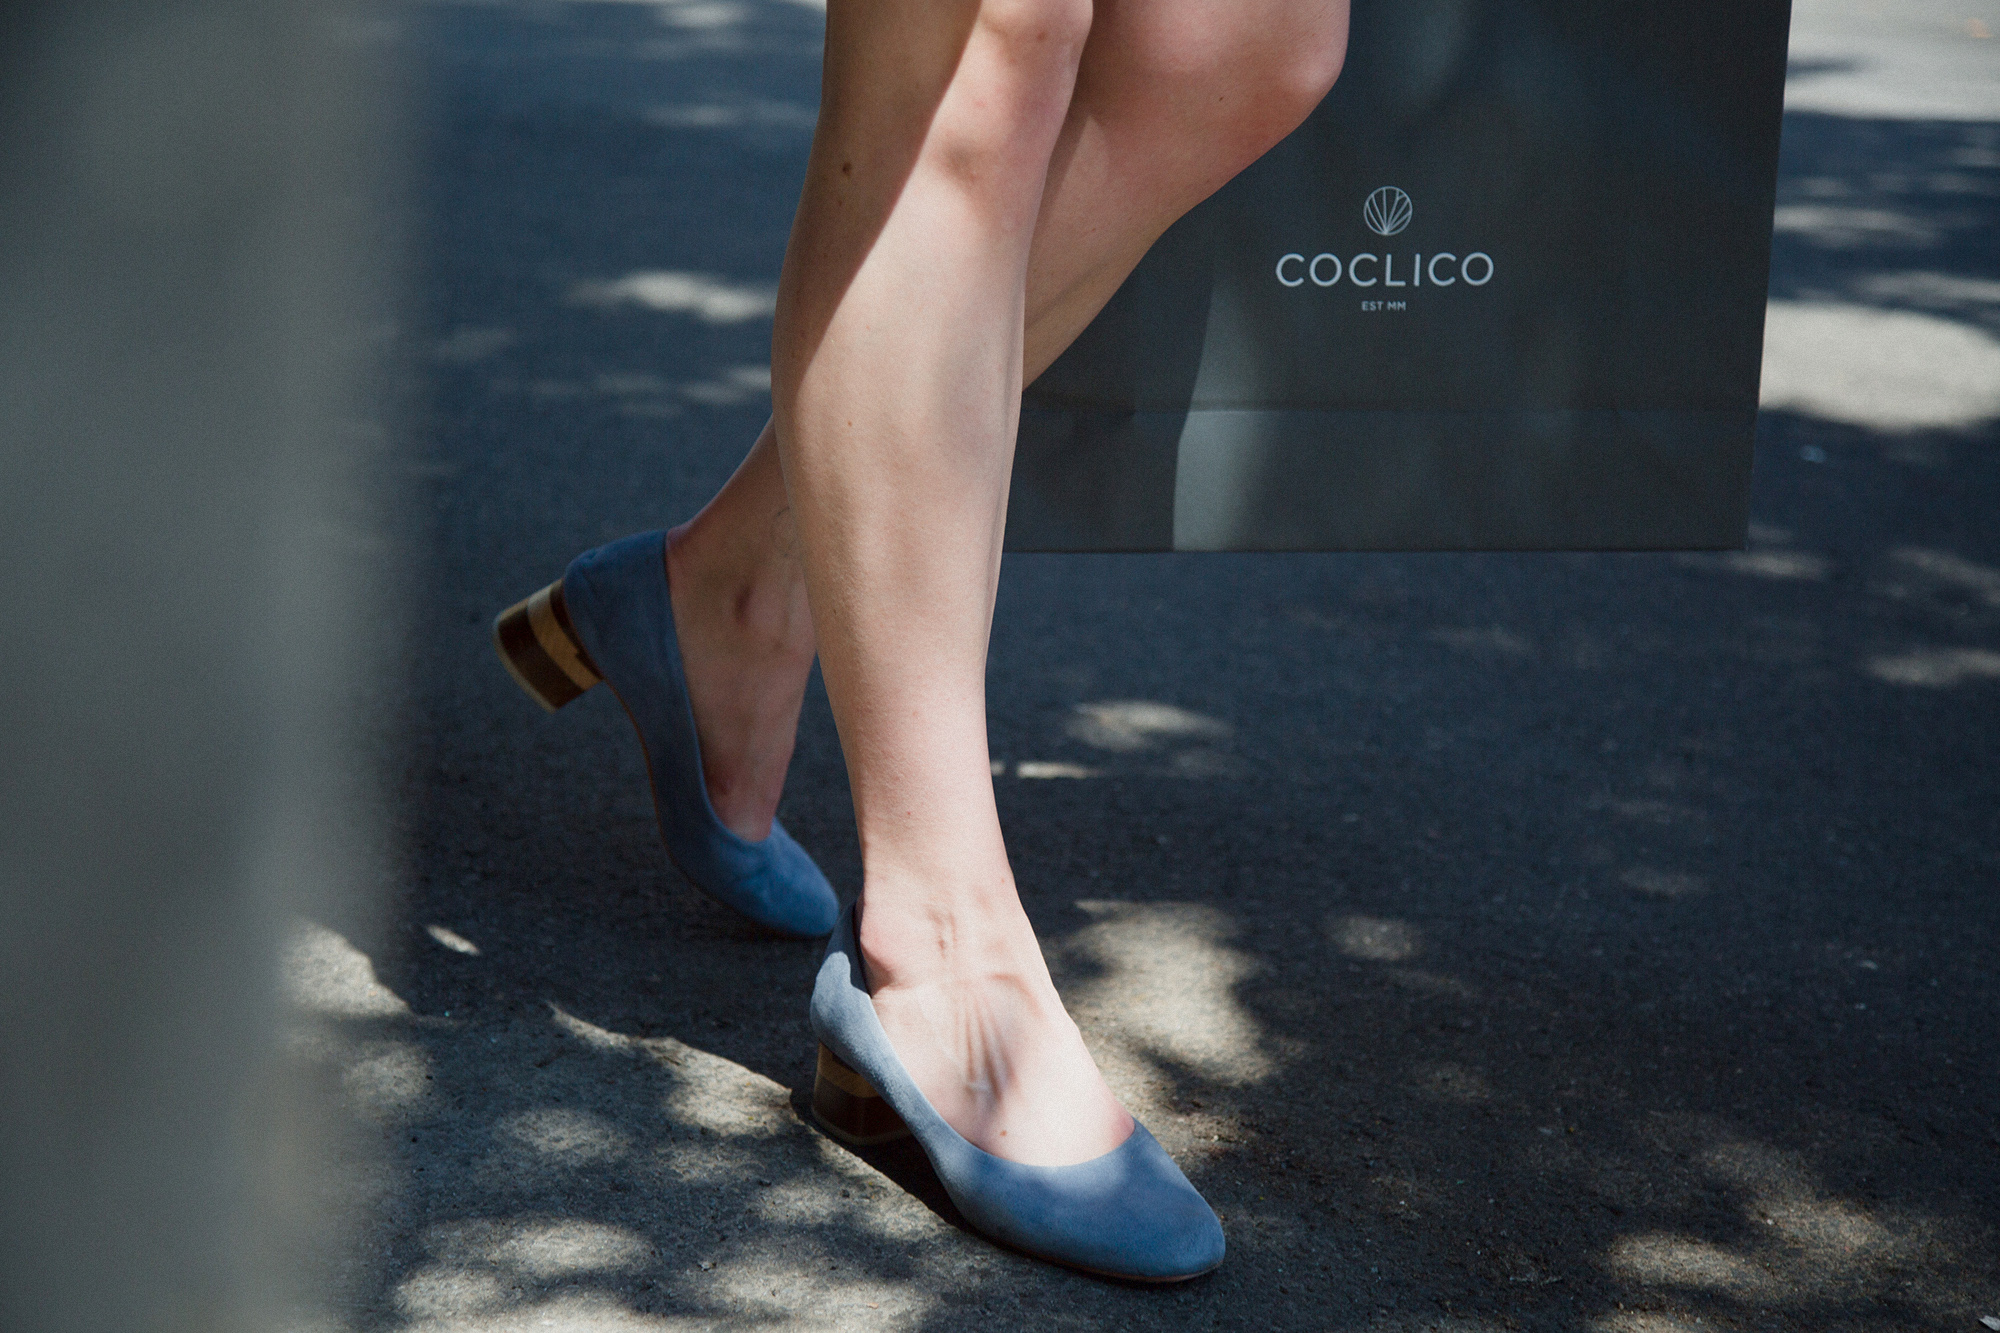 Coclico Shoes